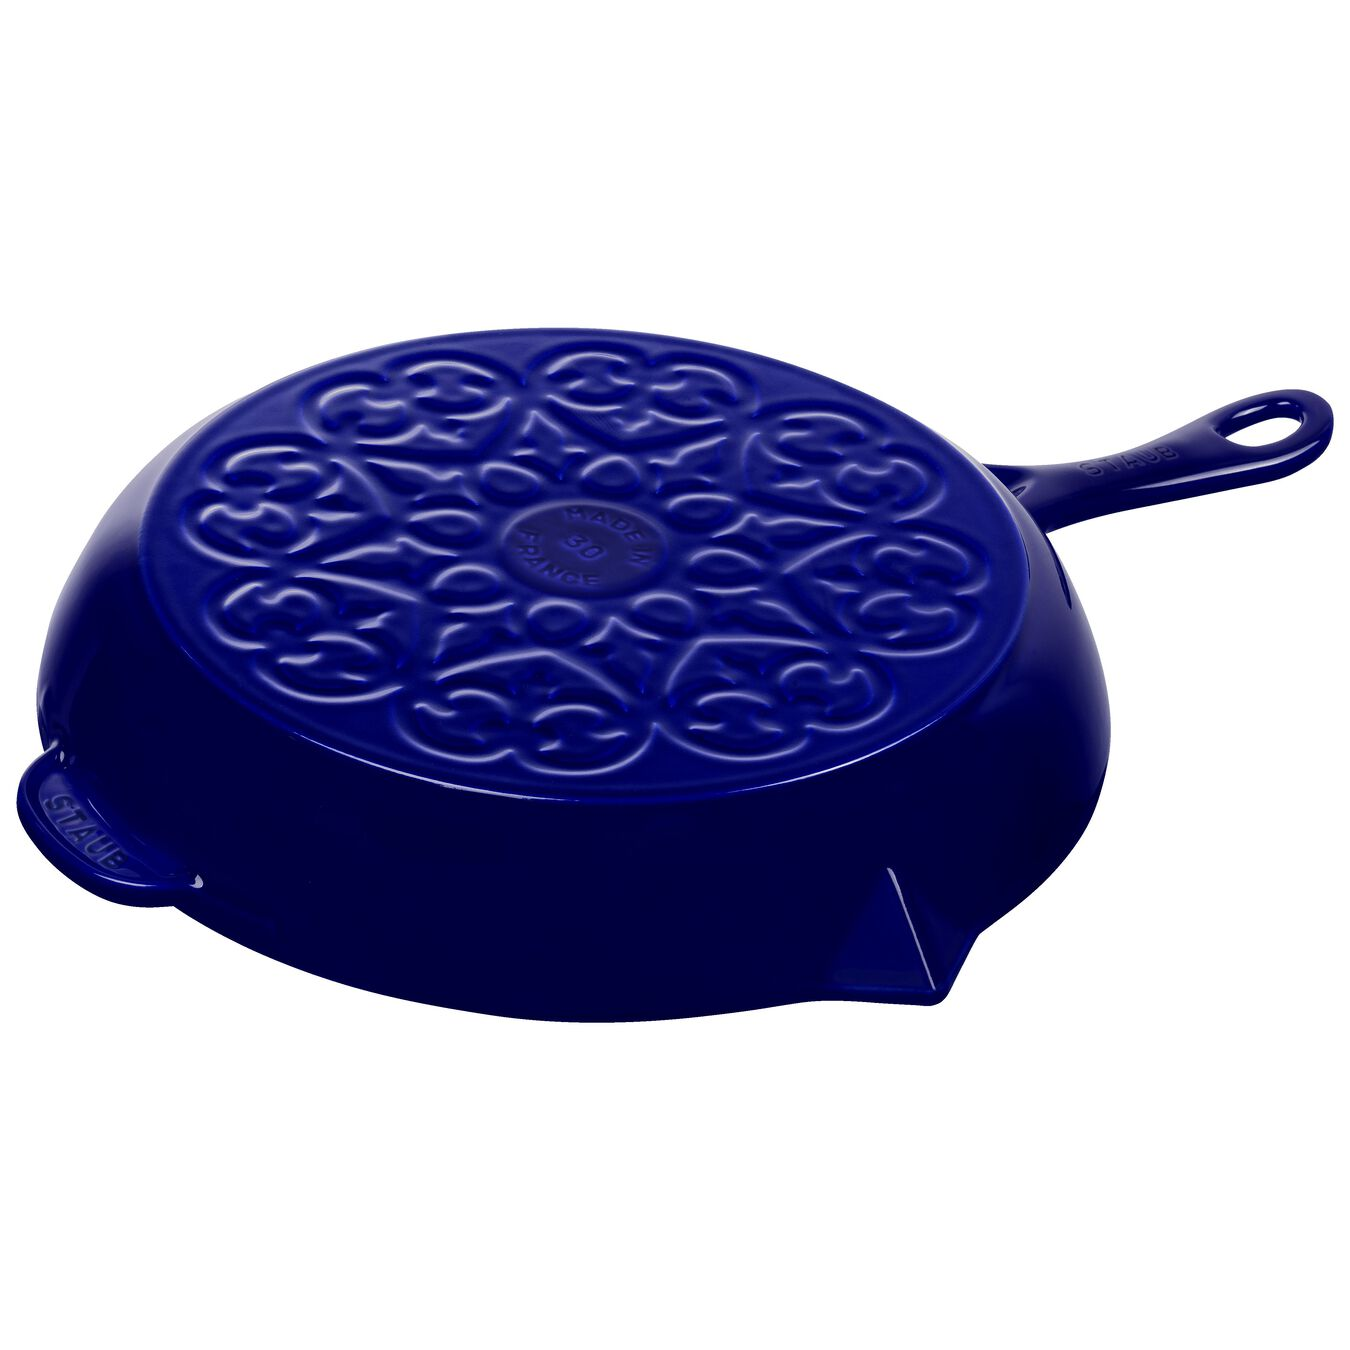 30 cm / 12 inch Frying pan, lily decal, dark-blue,,large 2